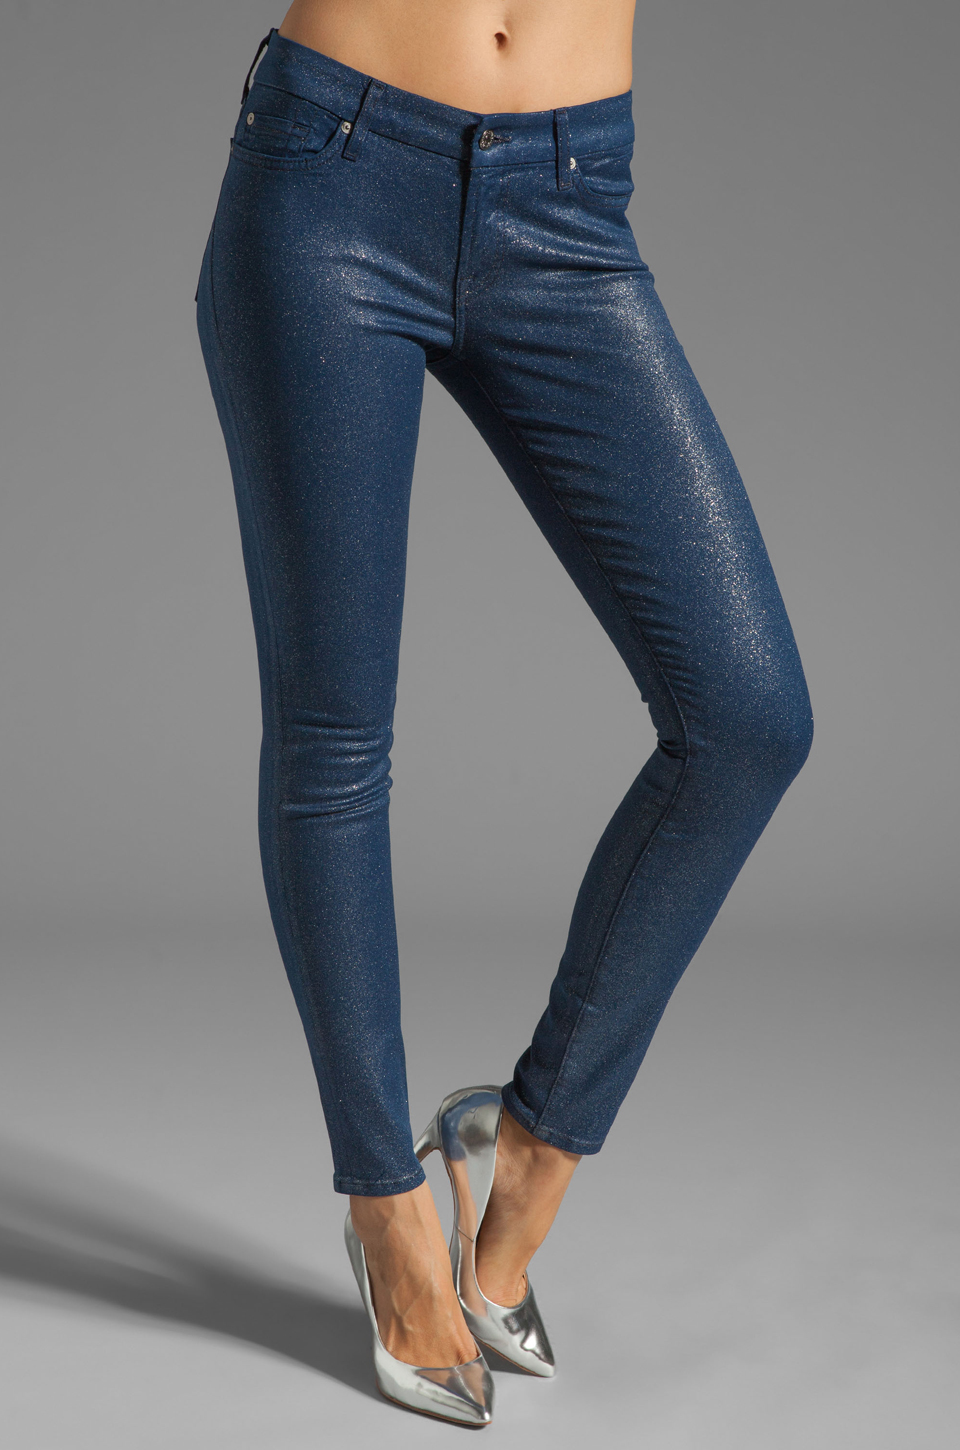 7 For All Mankind The Skinny in Midnight Navy Glitter